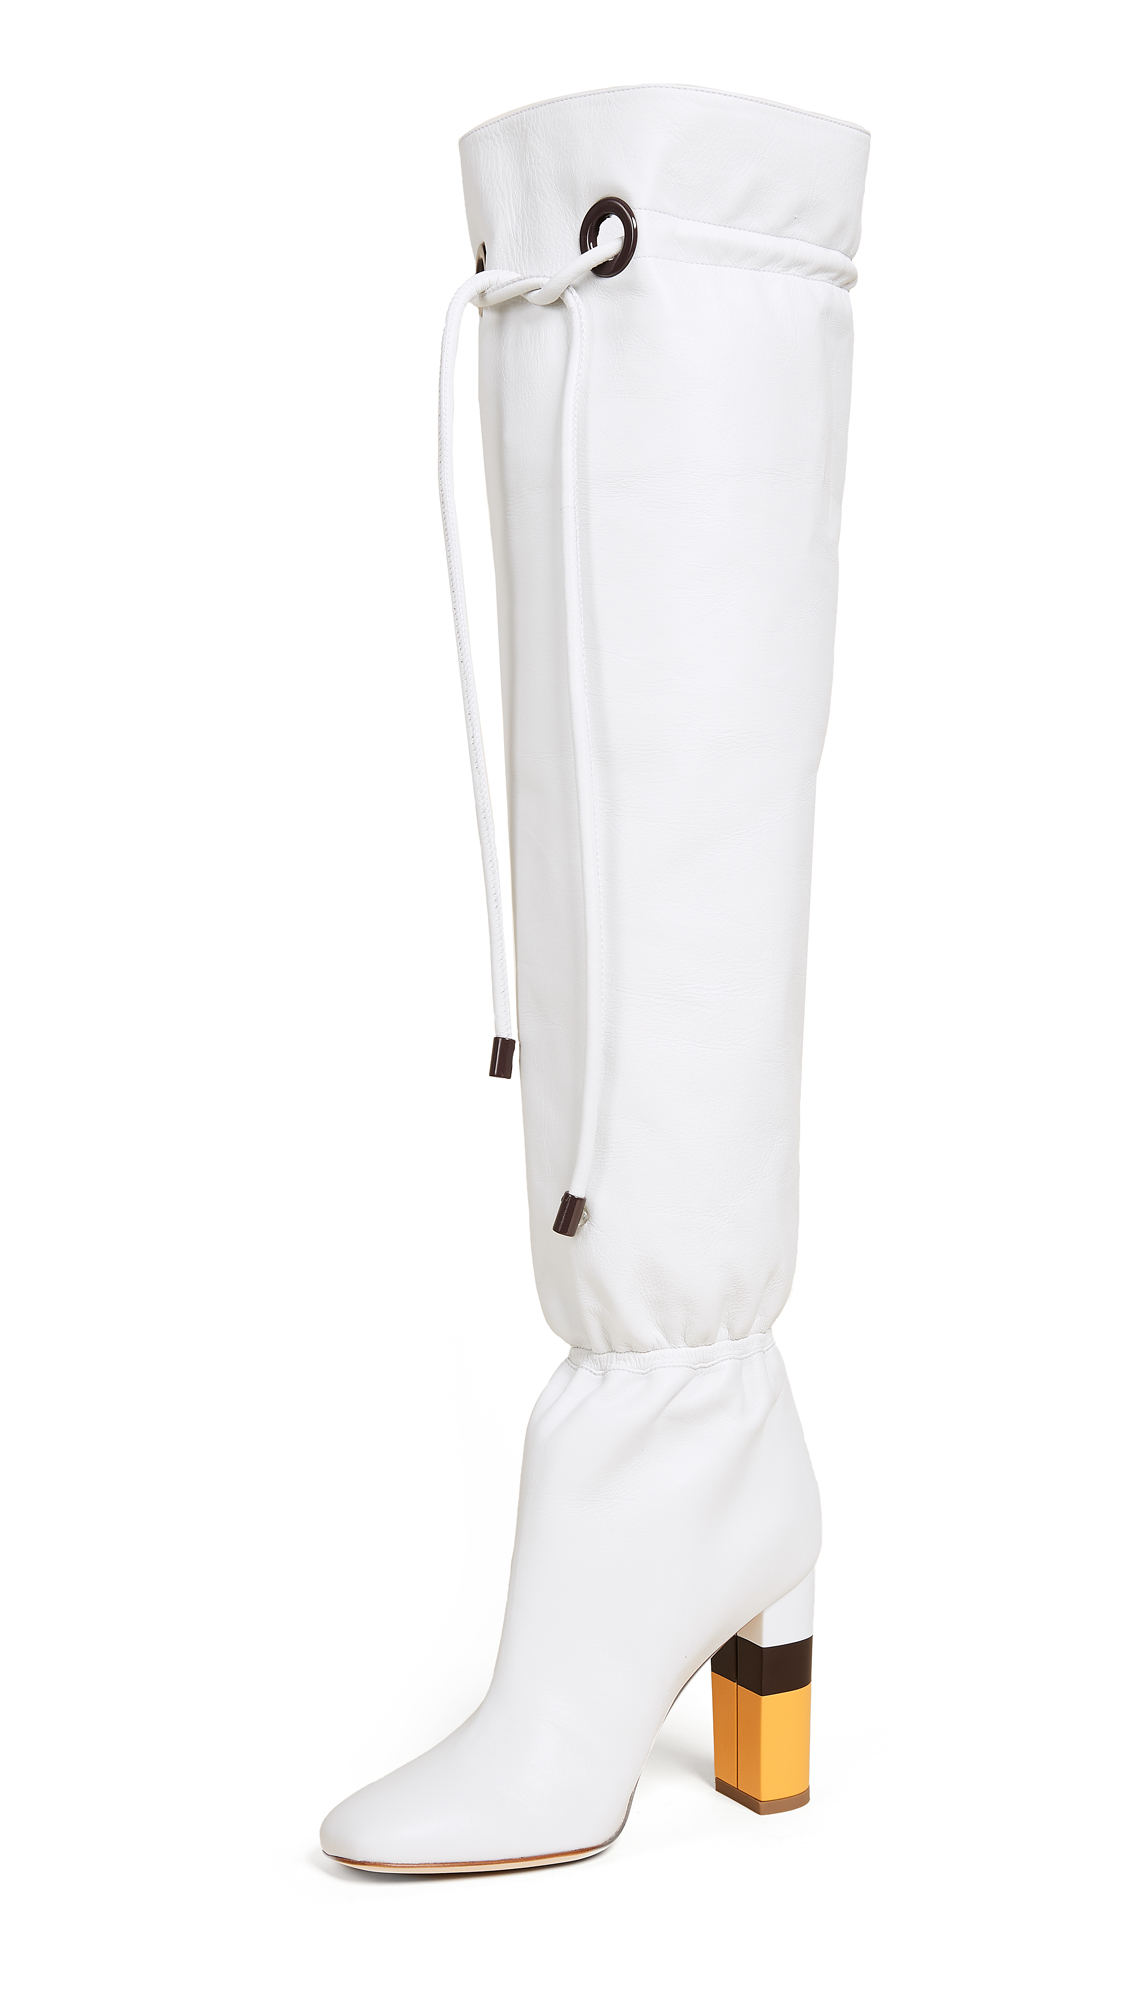 Malone Souliers Kendas Tie Boots - Ivory